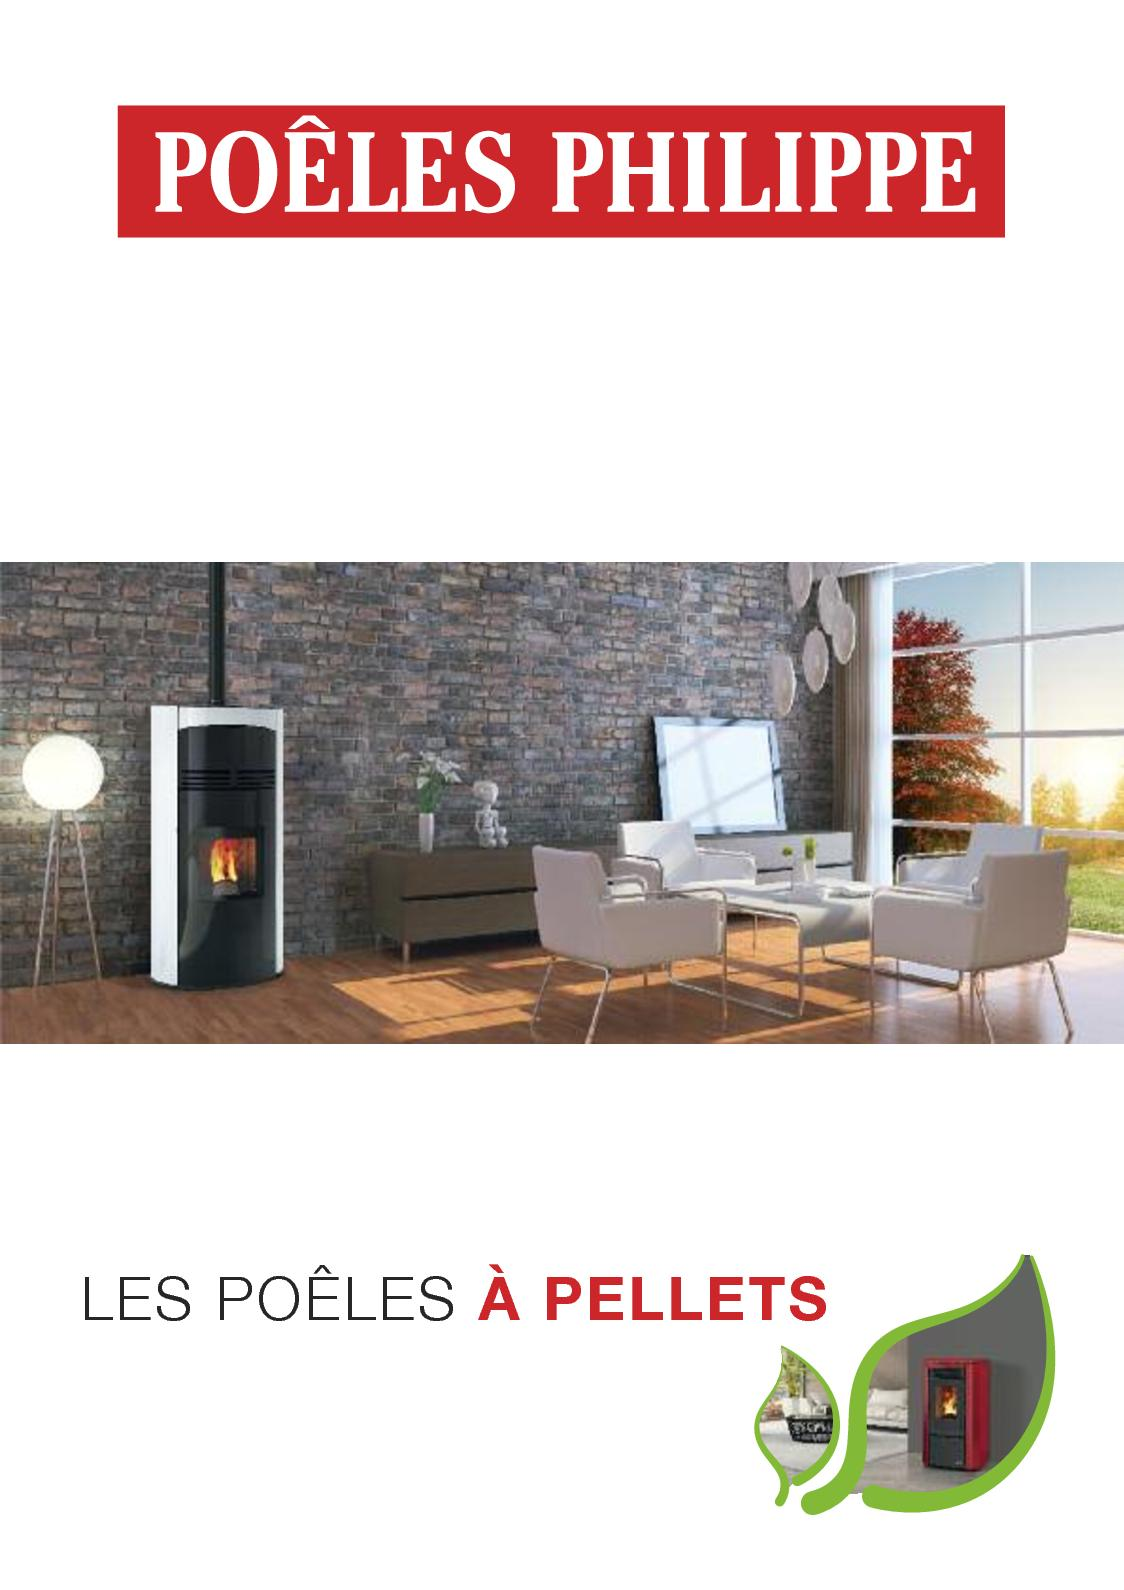 Cheminees Philippe Rivedoux 9kw Calaméo Poeles Pellets Philippe